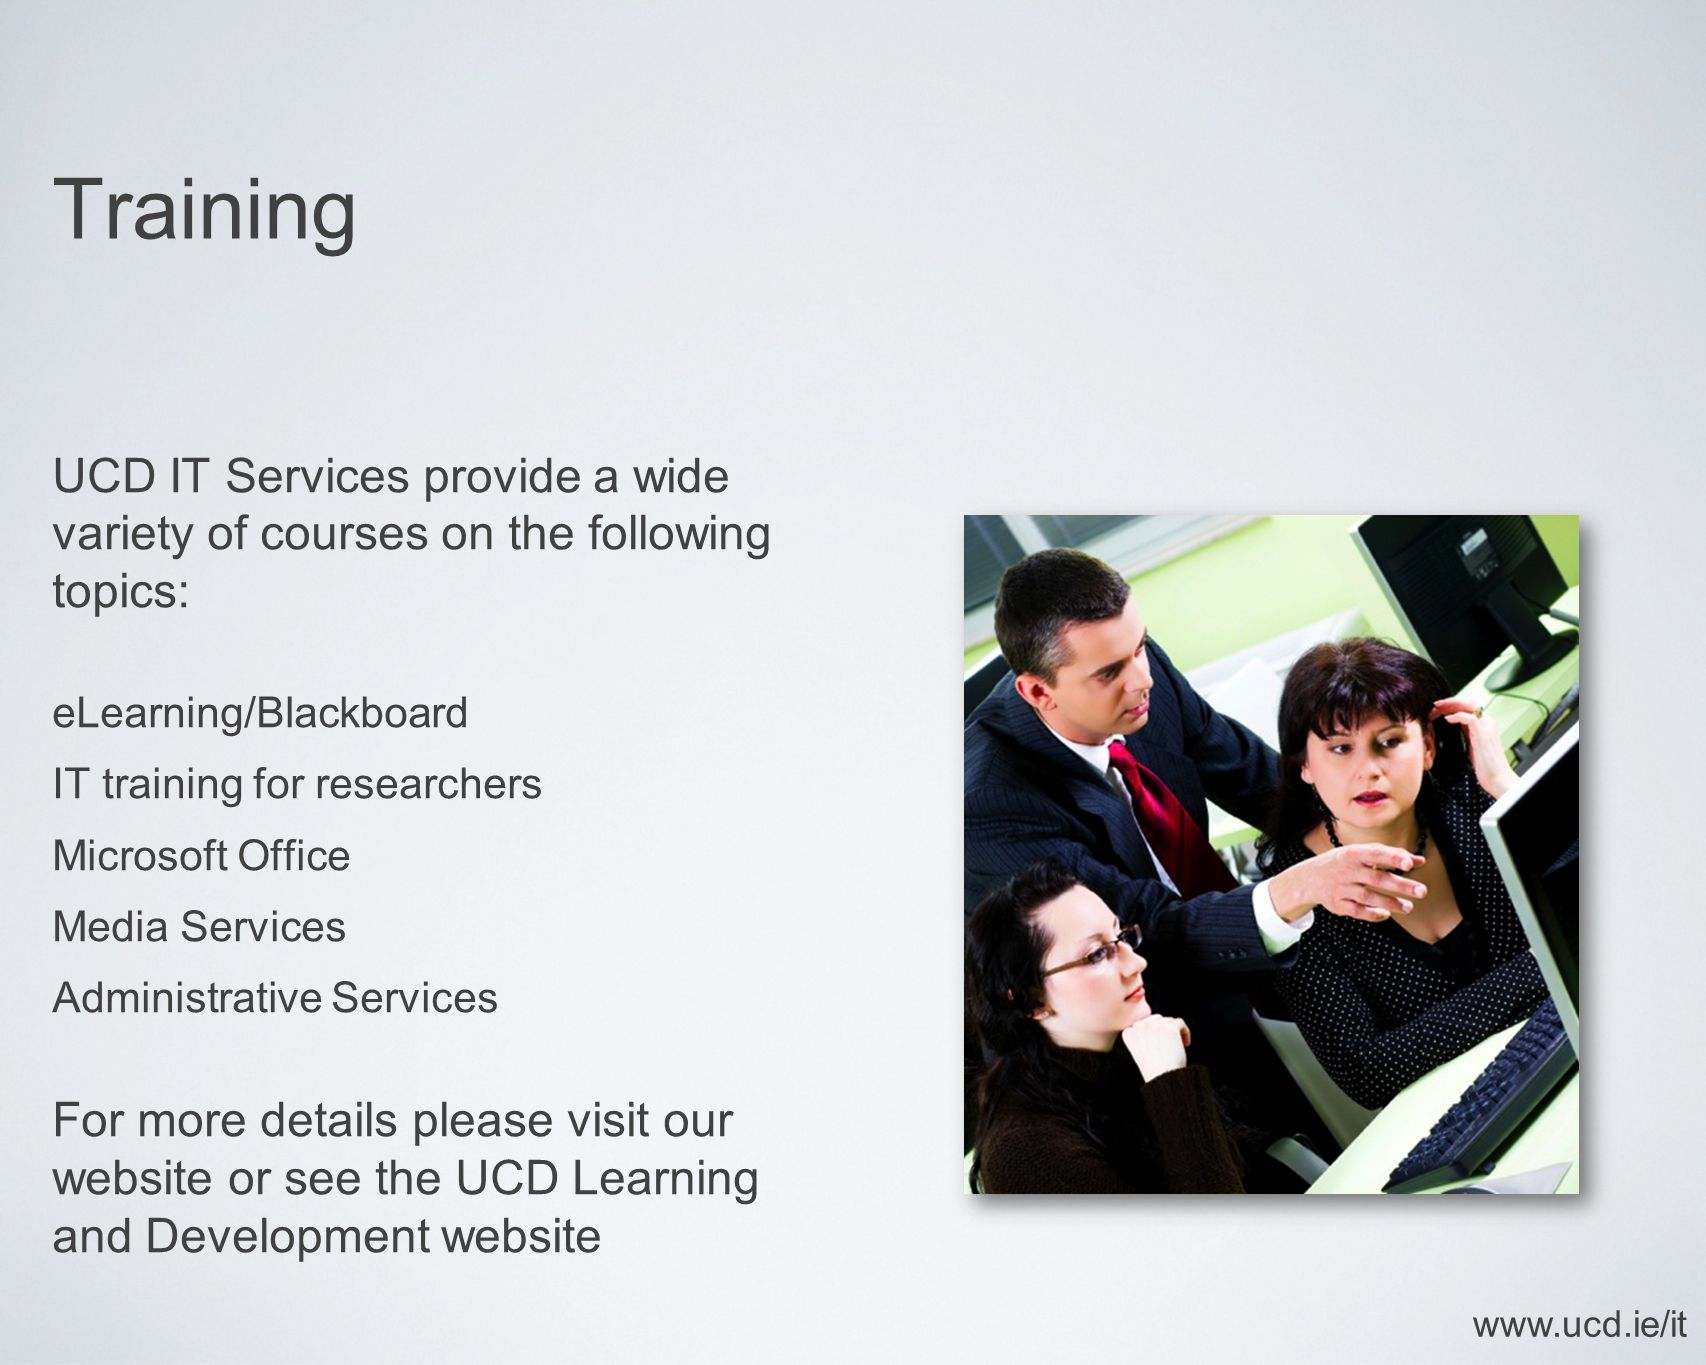 Training UCD IT Services provide a wide variety of courses on the following topics: eLearning/Blackboard IT training for researchers Microsoft Office